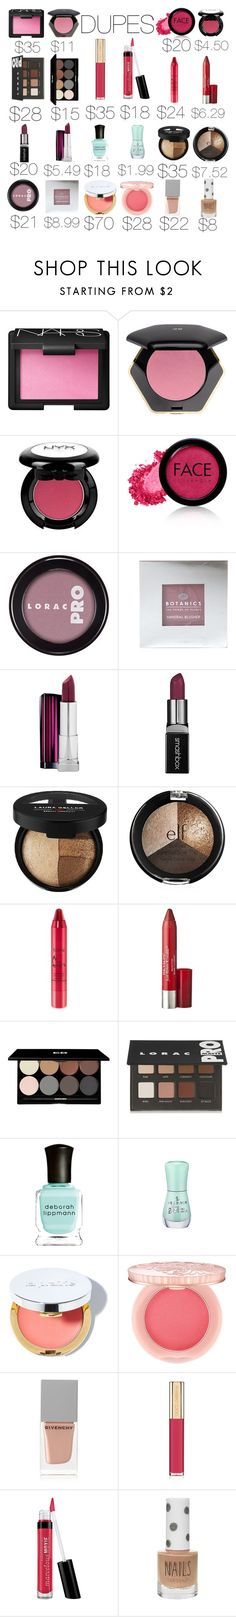 """Luxury Makeup Dupes"" by lilymadelyn ❤ liked on Polyvore featuring beauty, NARS Cosmetics, H&M, FACE Stockholm, LORAC, Smashbox, Laura Geller, tarte, Revlon and Edward Bess"